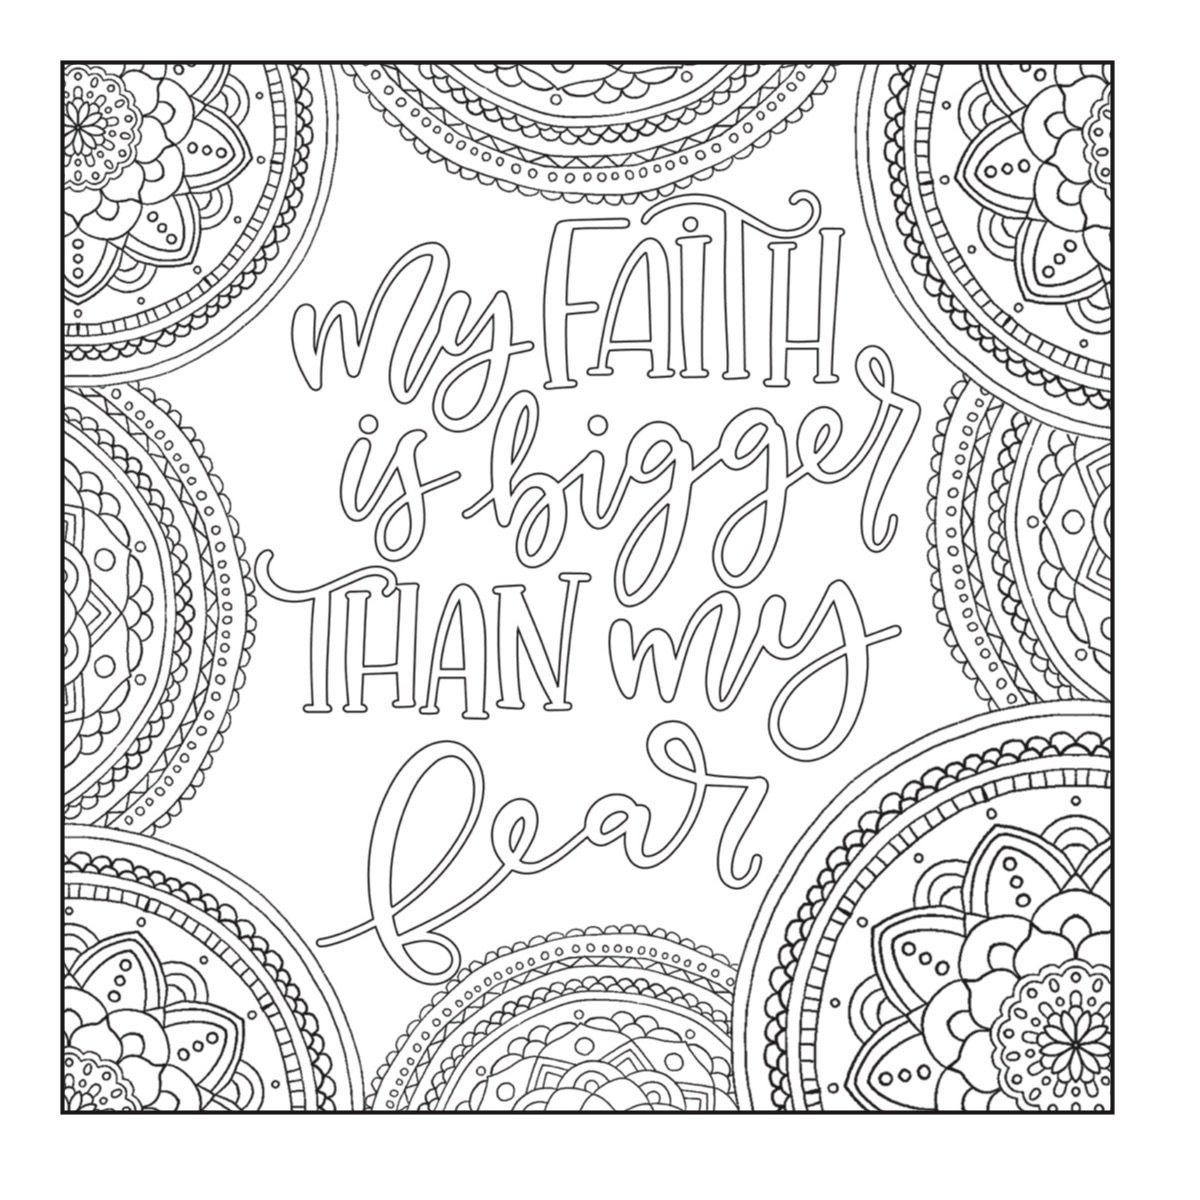 5 Motivational Printable Coloring Pages Zentangle Coloring | Etsy